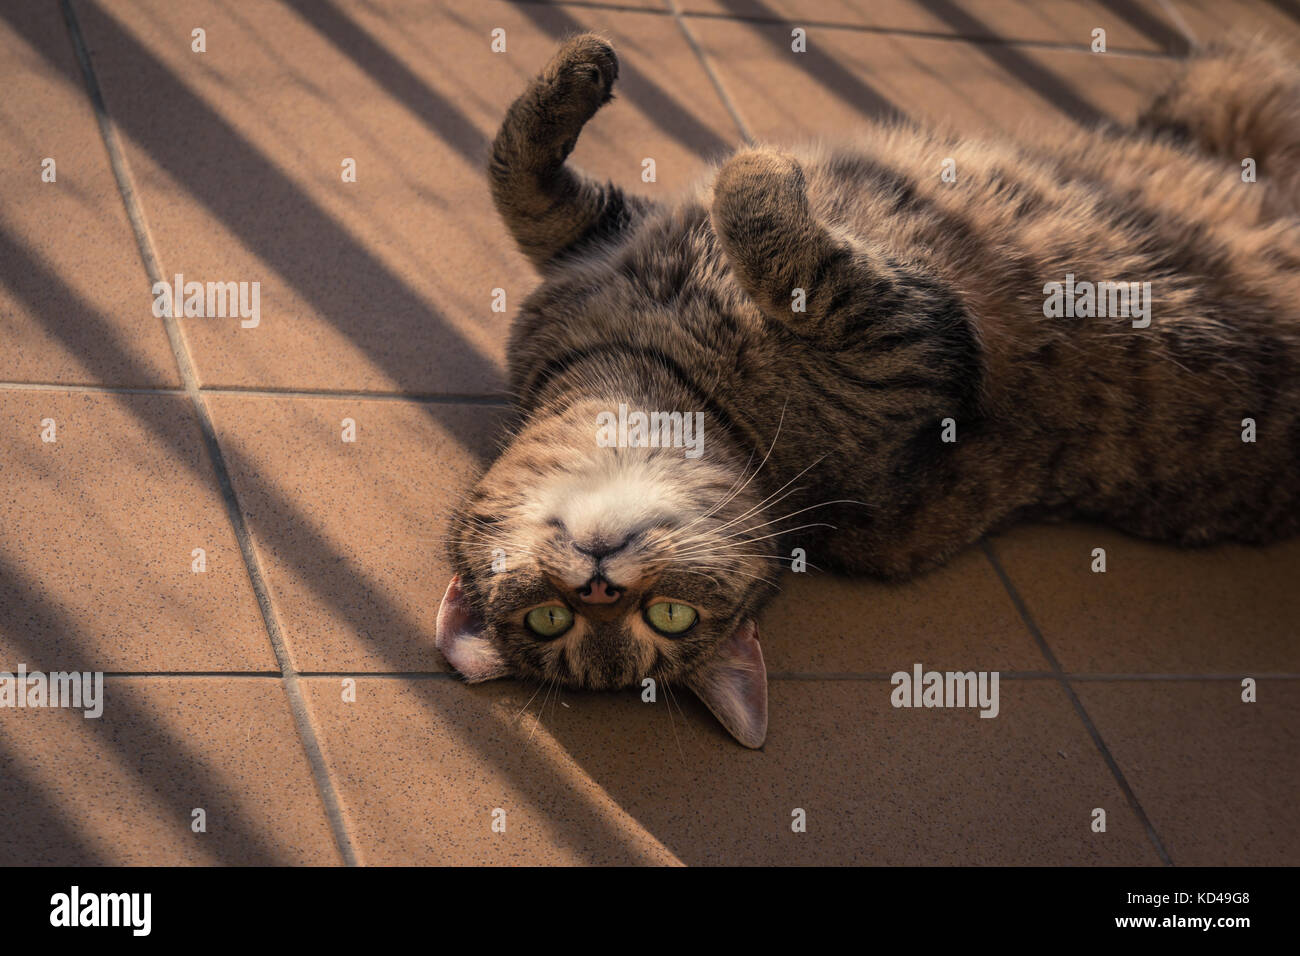 Cat playing on a balcony Stock Photo